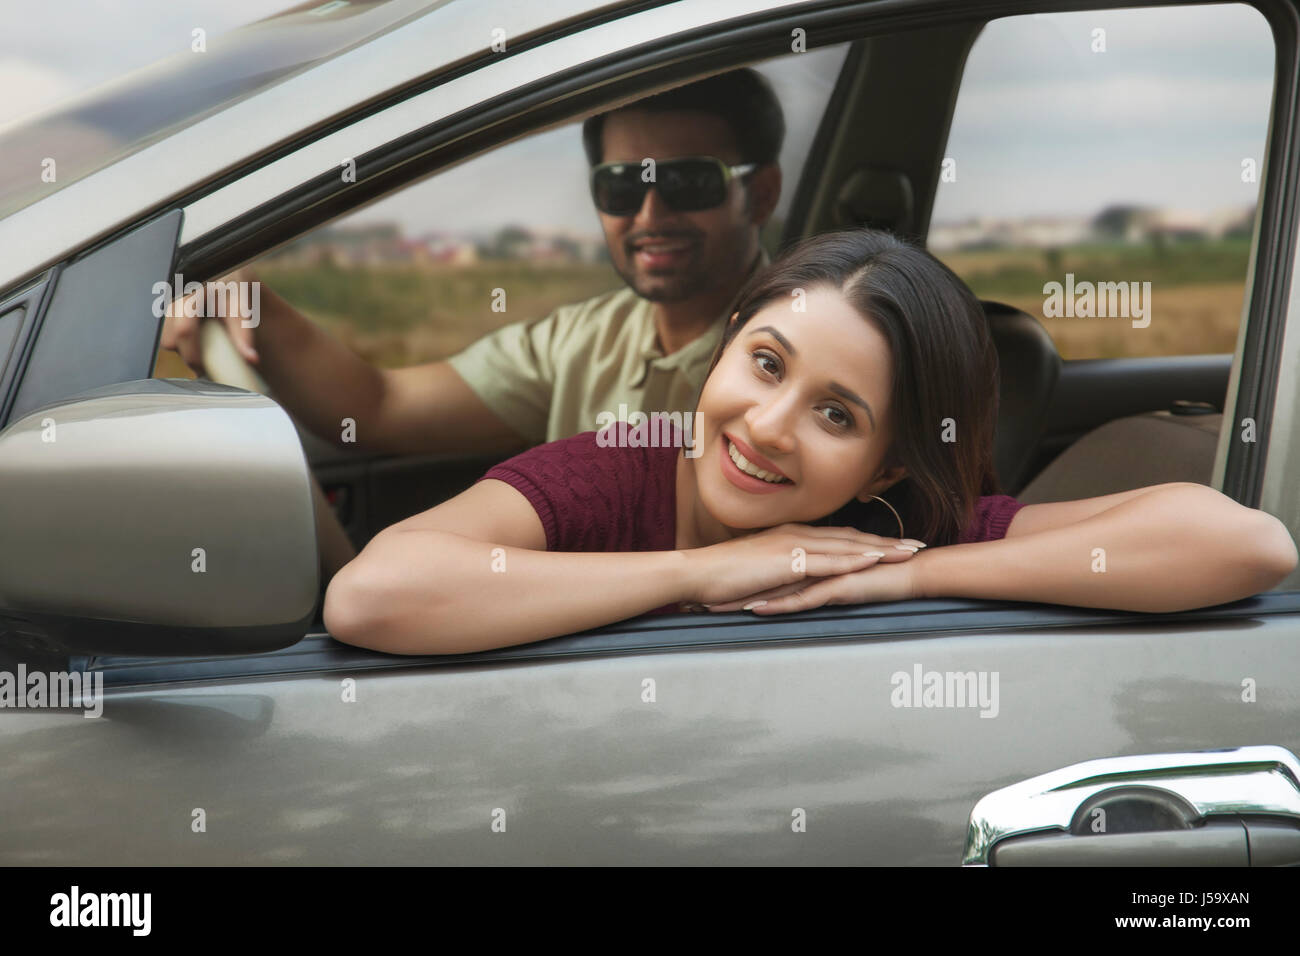 Young woman relaxing on car door during car ride Stock Photo